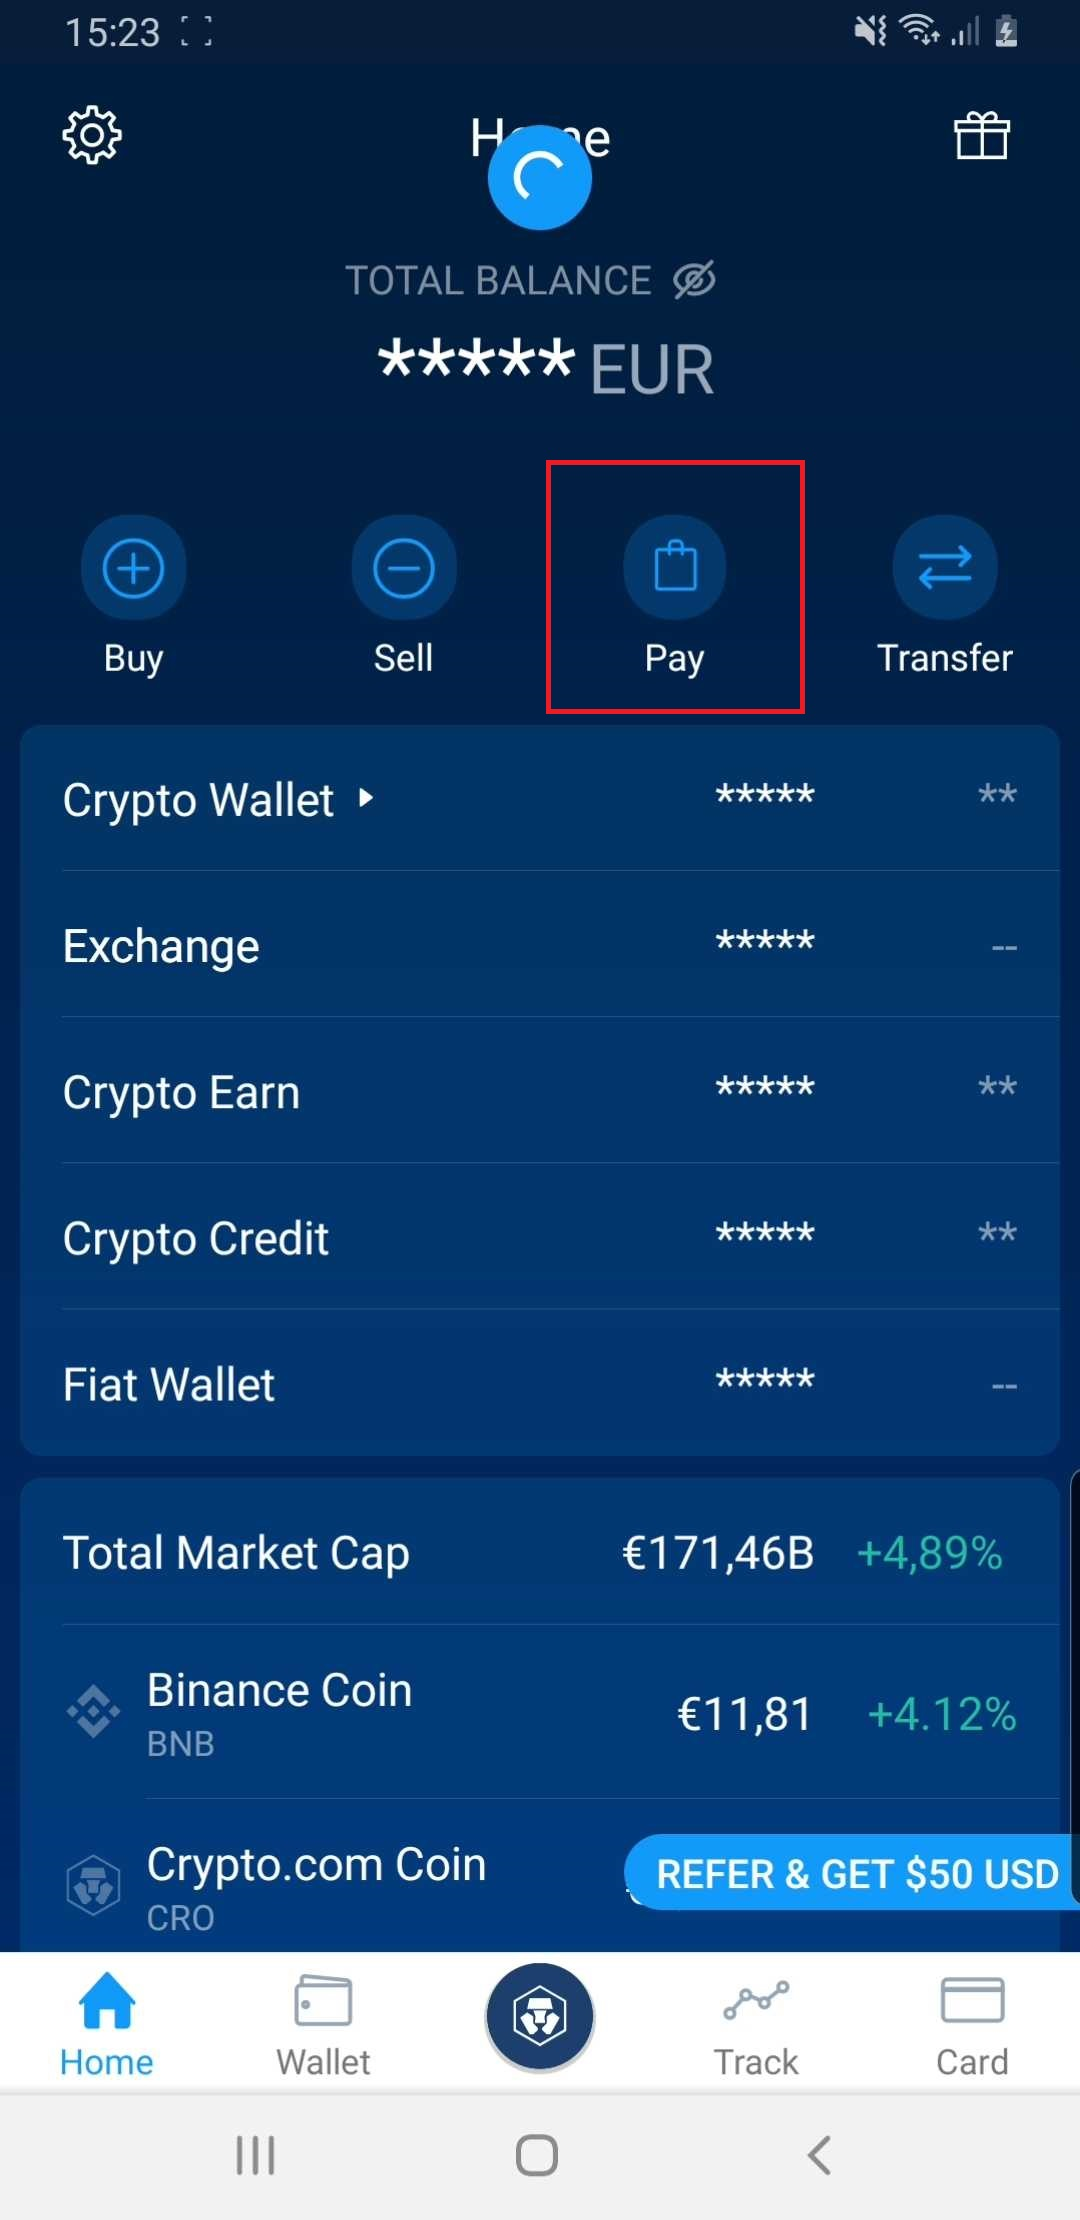 How to buy on crypto.com